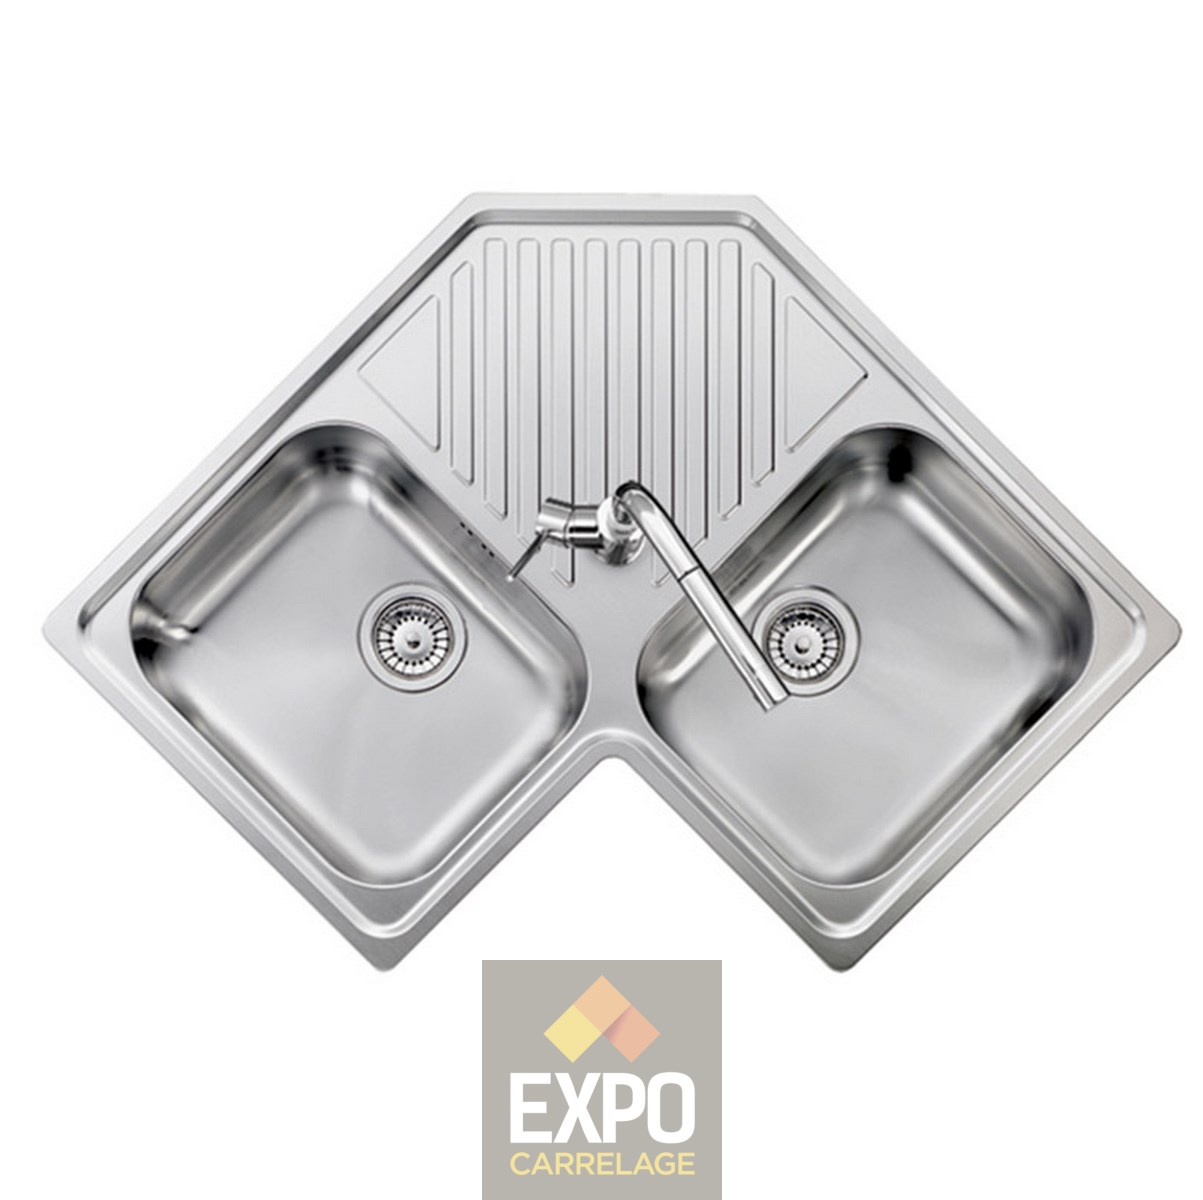 Evier Inox Deux Bacs Evier Inox Refresh D Angle 2 Bacs Expo Carrelage